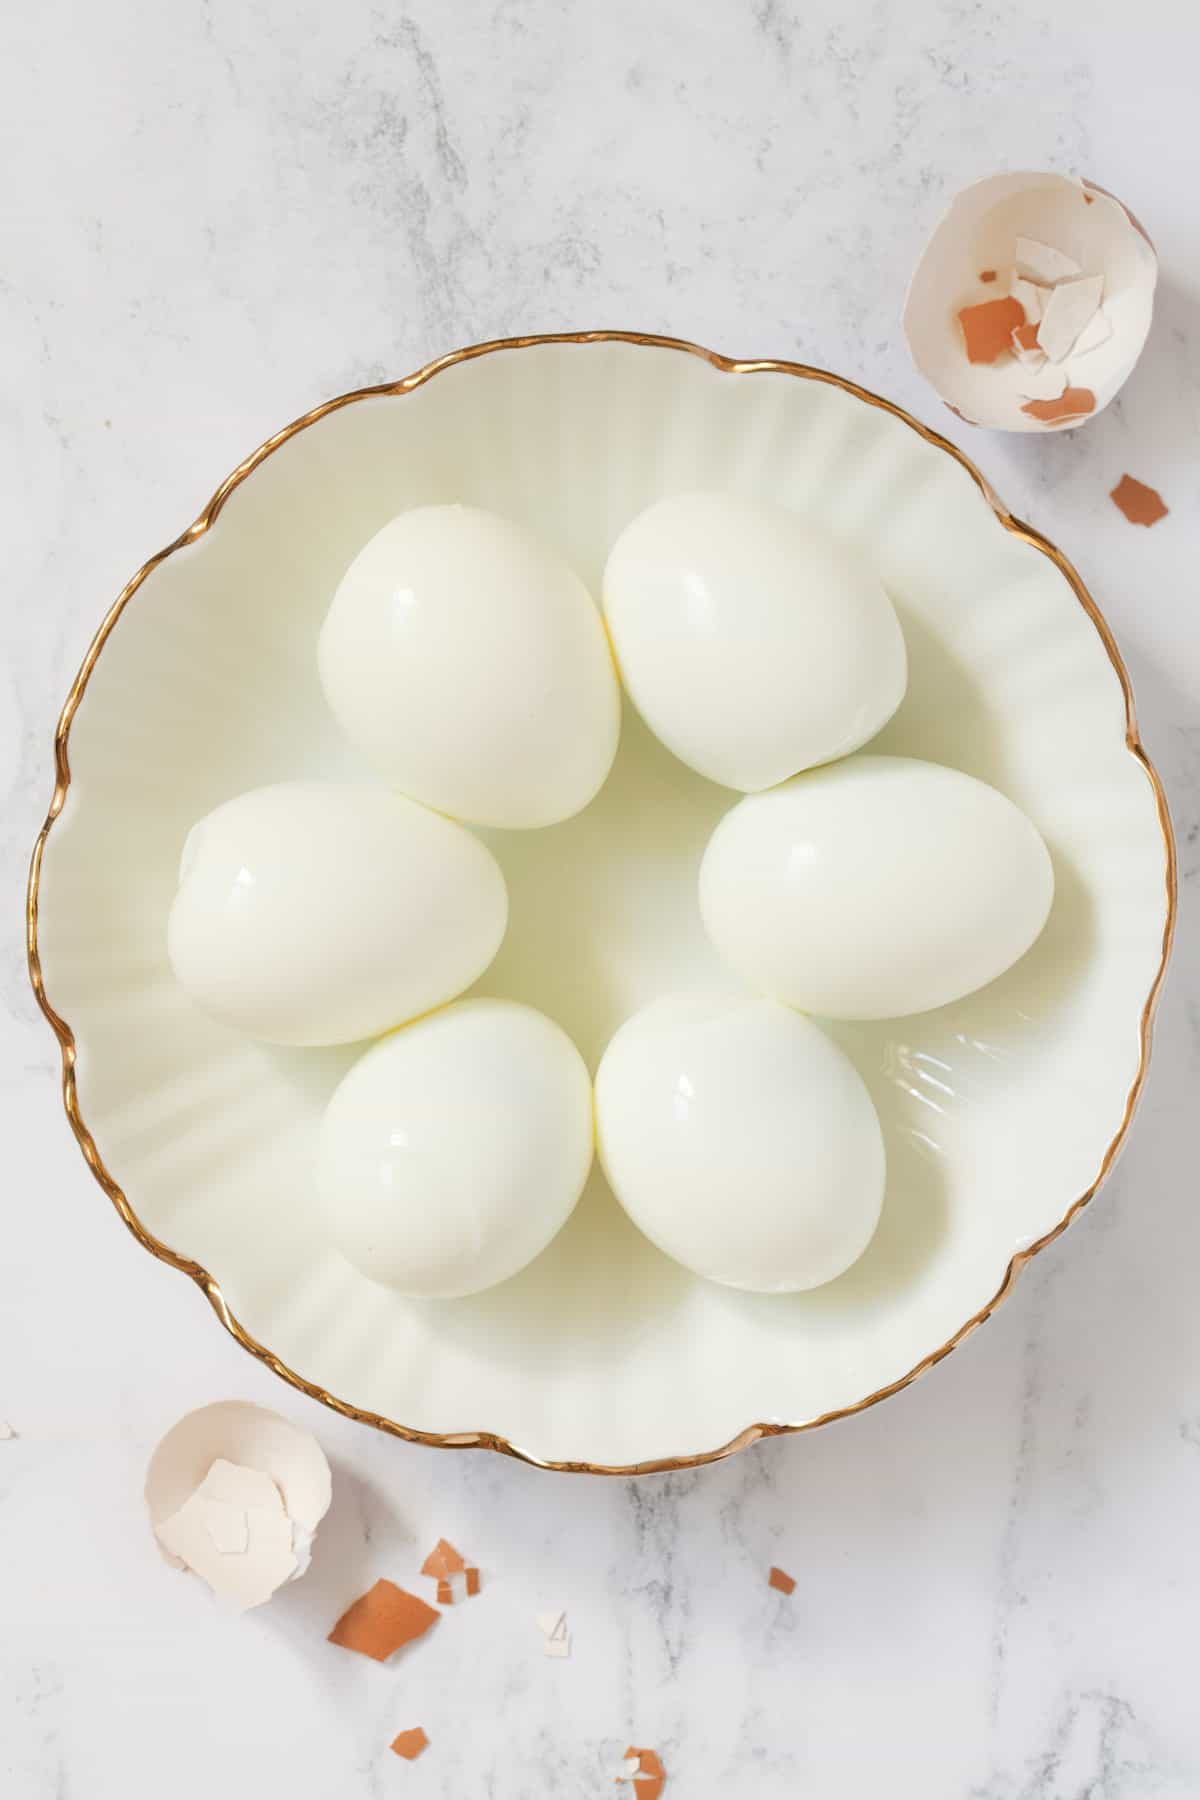 Six hard boiled eggs without their shells